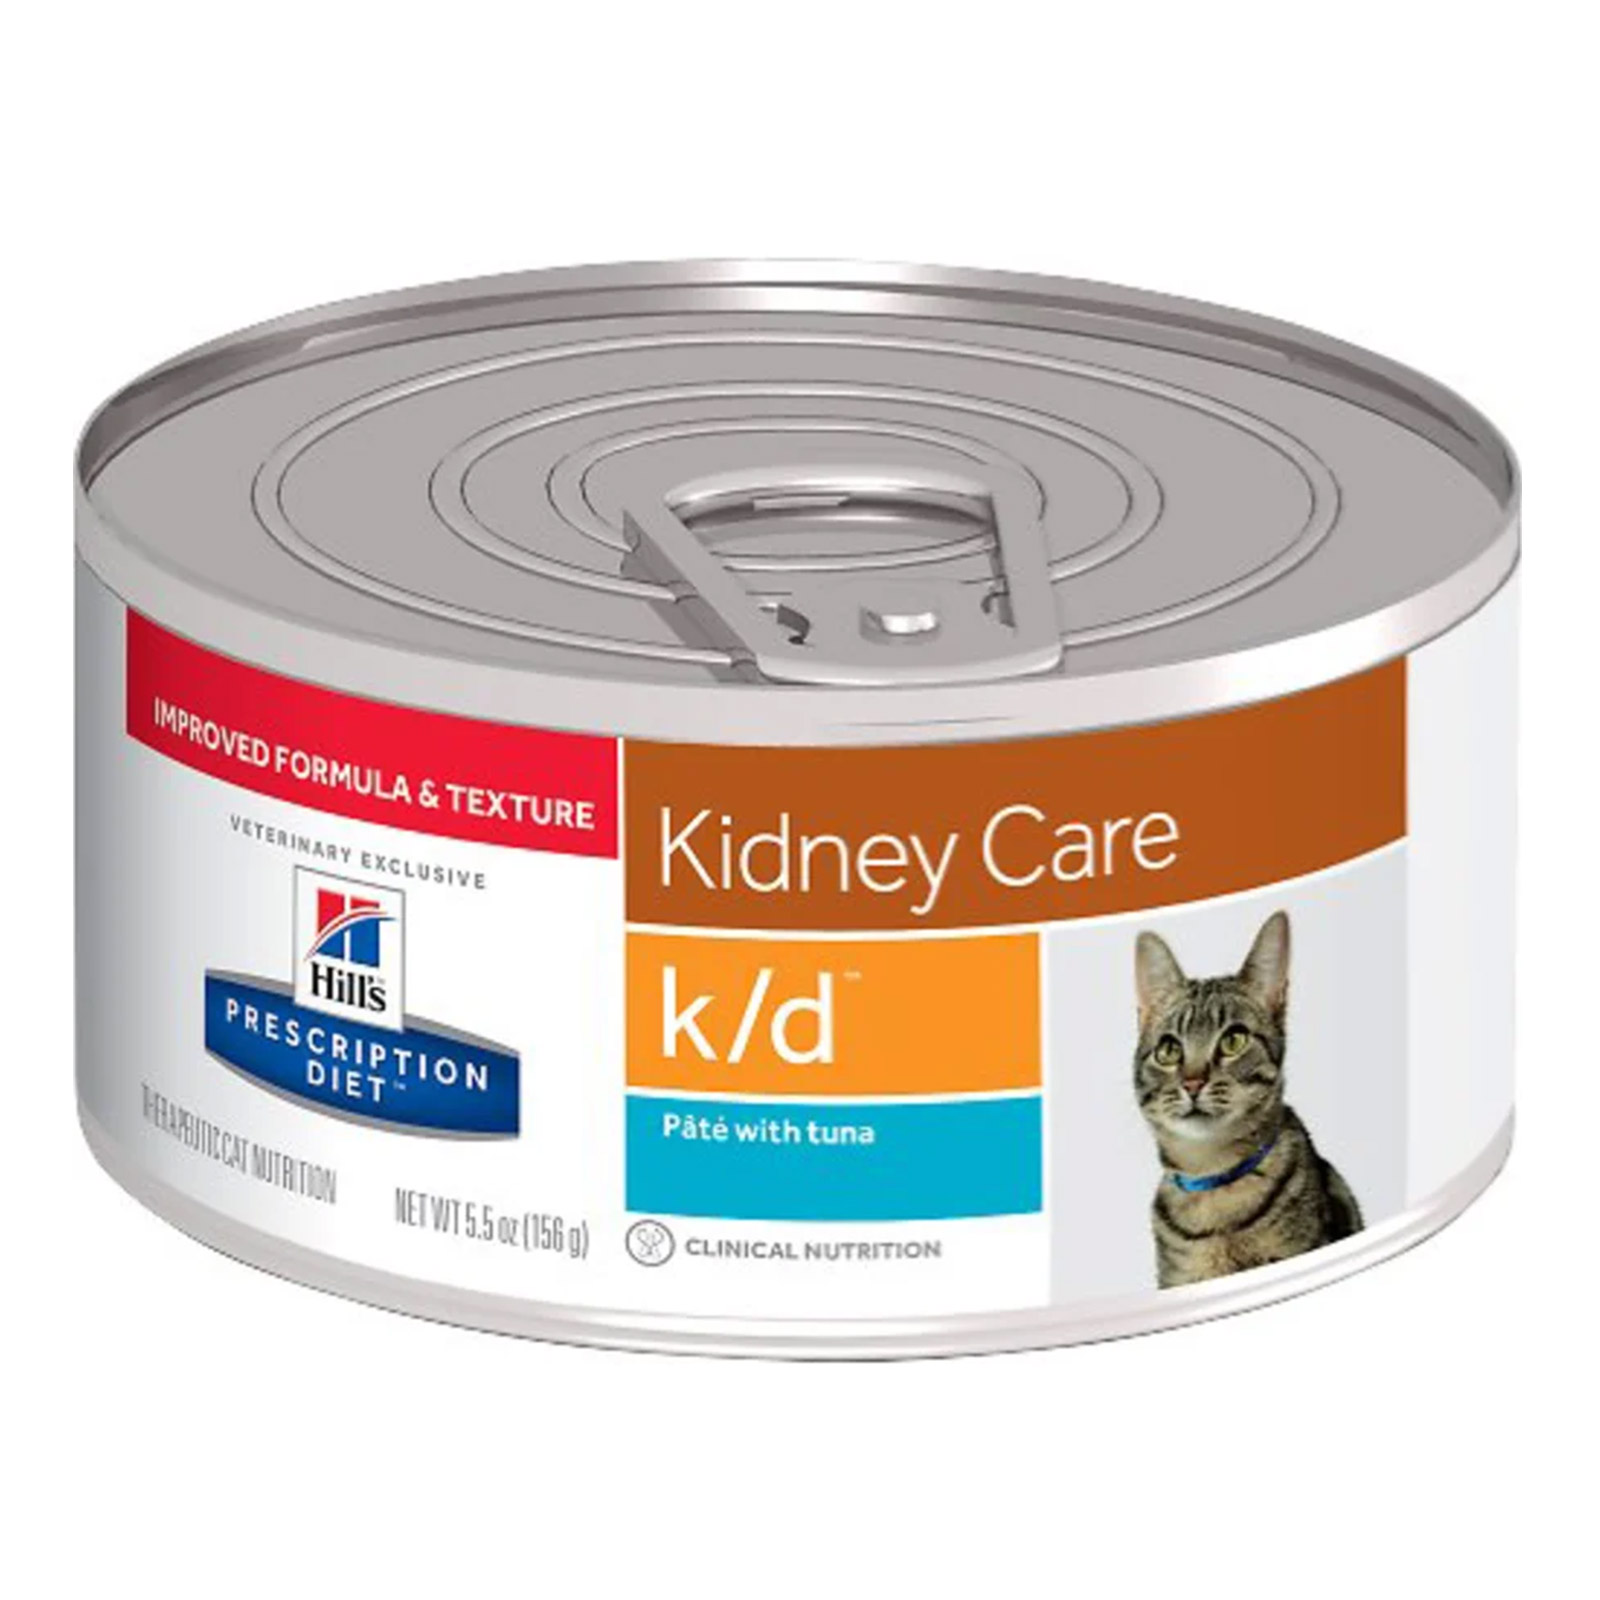 Hill's Prescription Diet K/D Kidney Care With Tuna Canned Cat Food 156 Gm 24 Cans